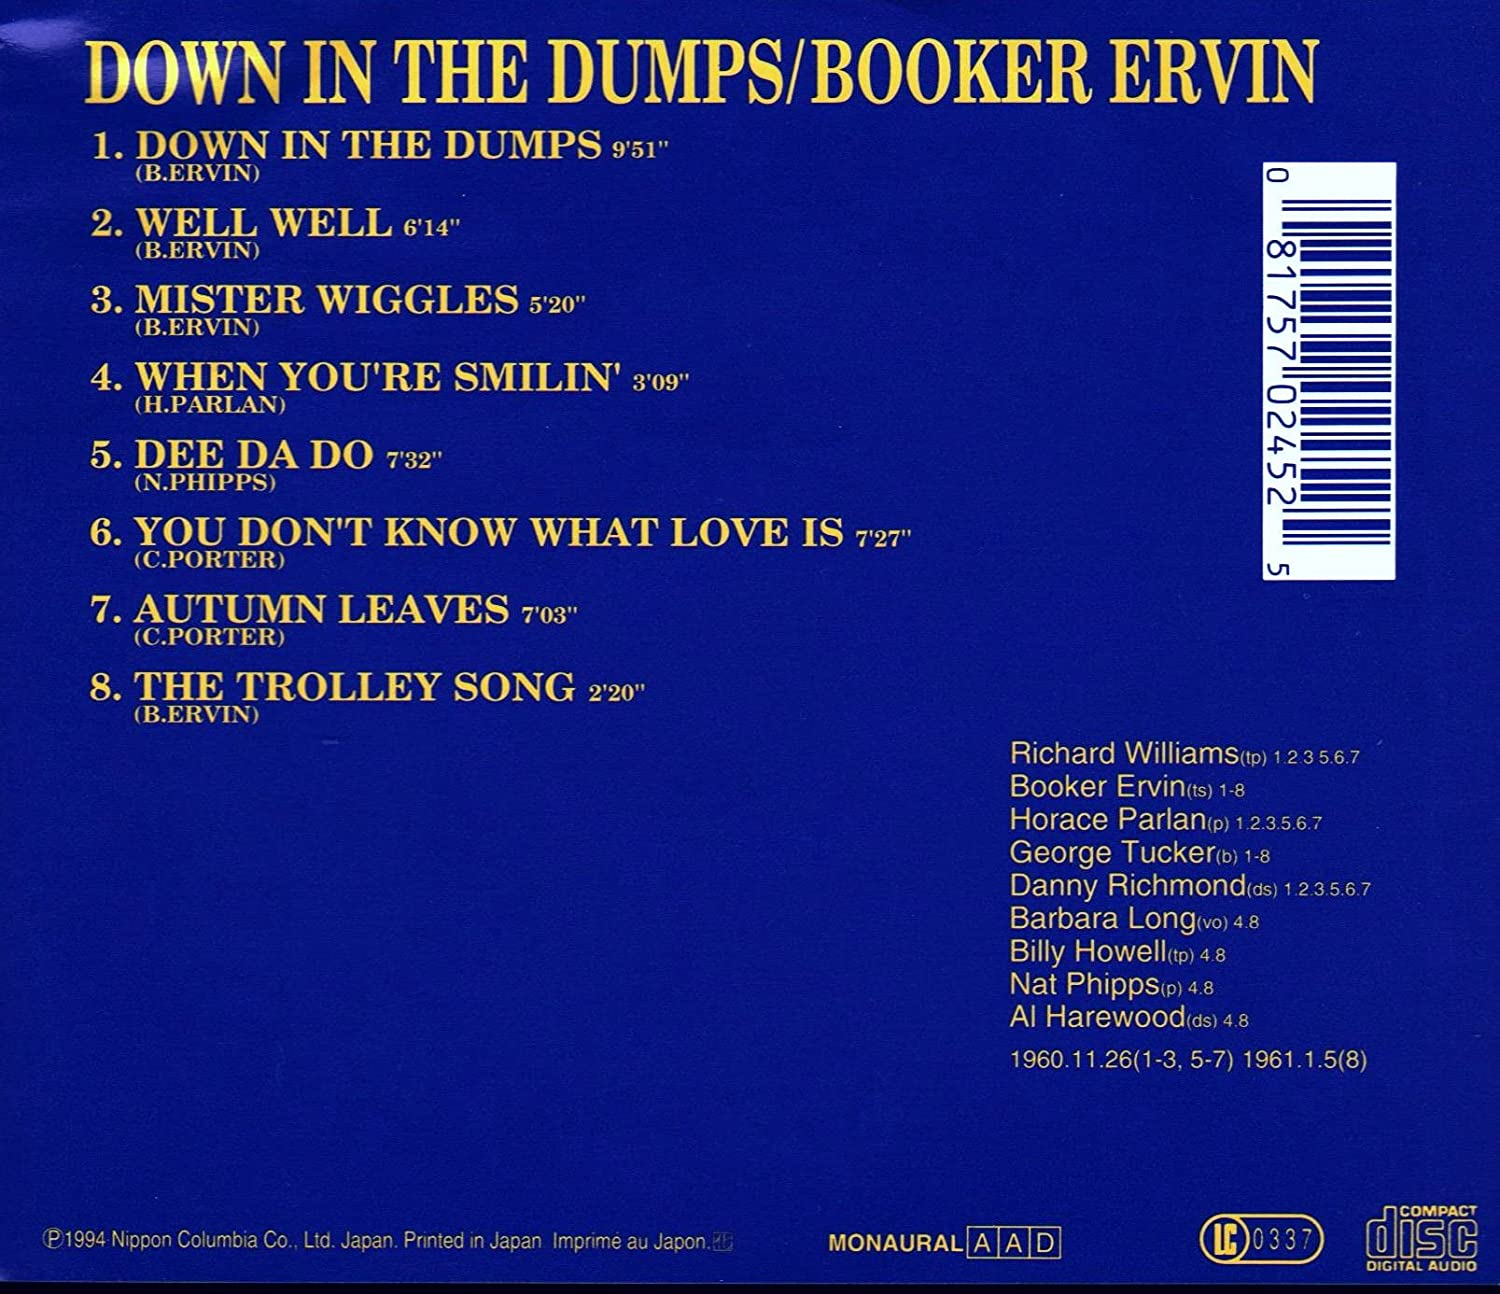 Down in the dumps song